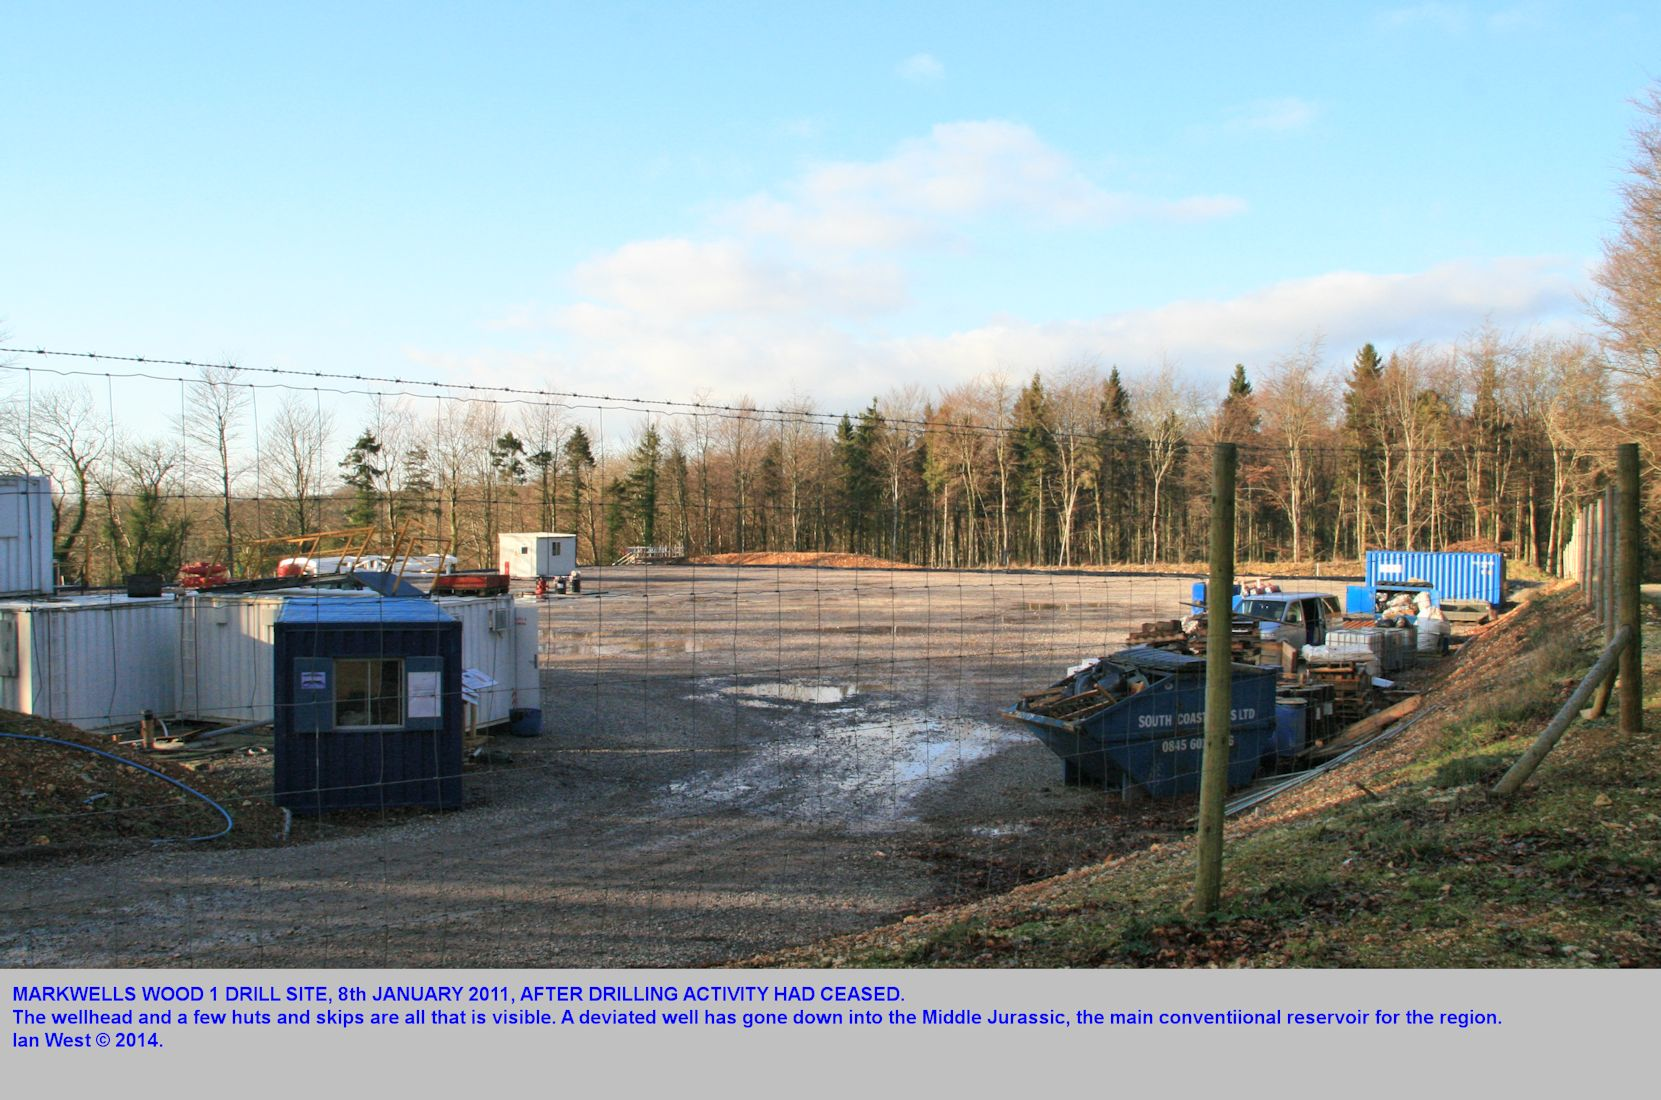 The Markwells 1 drill site, empty after drilling, 8th January 2011.